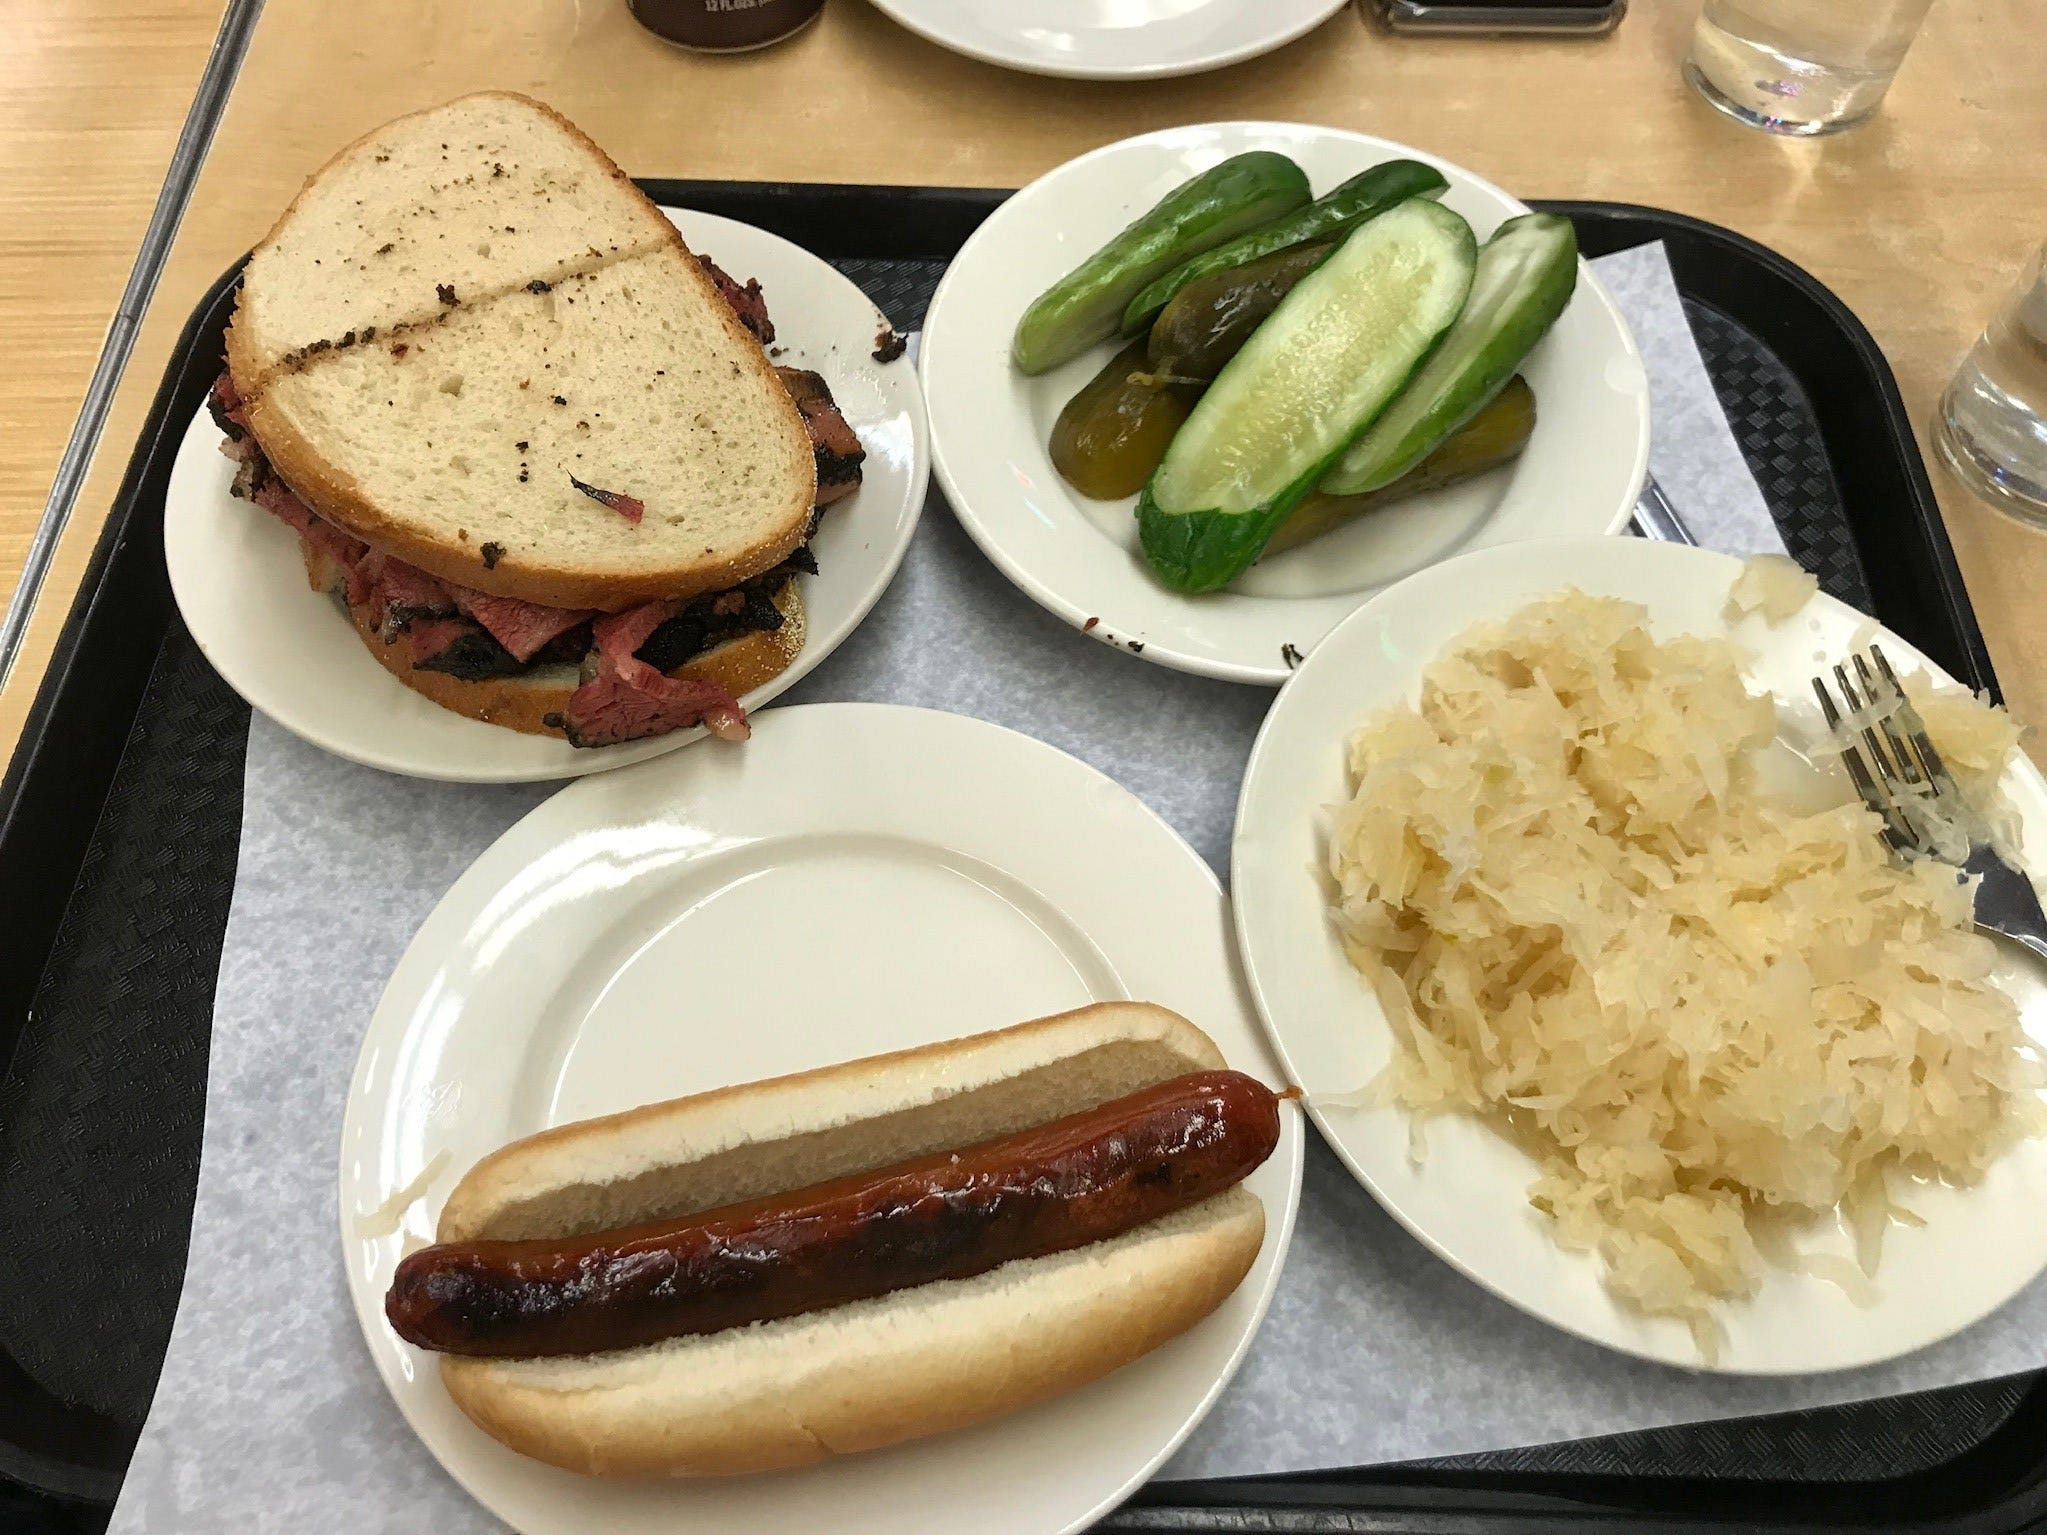 There is a lot of sharing and mix-and-match at Katz's. This tray features an all-beef hot dog, sauerkraut, house-cured pickles and a corned beef sandwich.